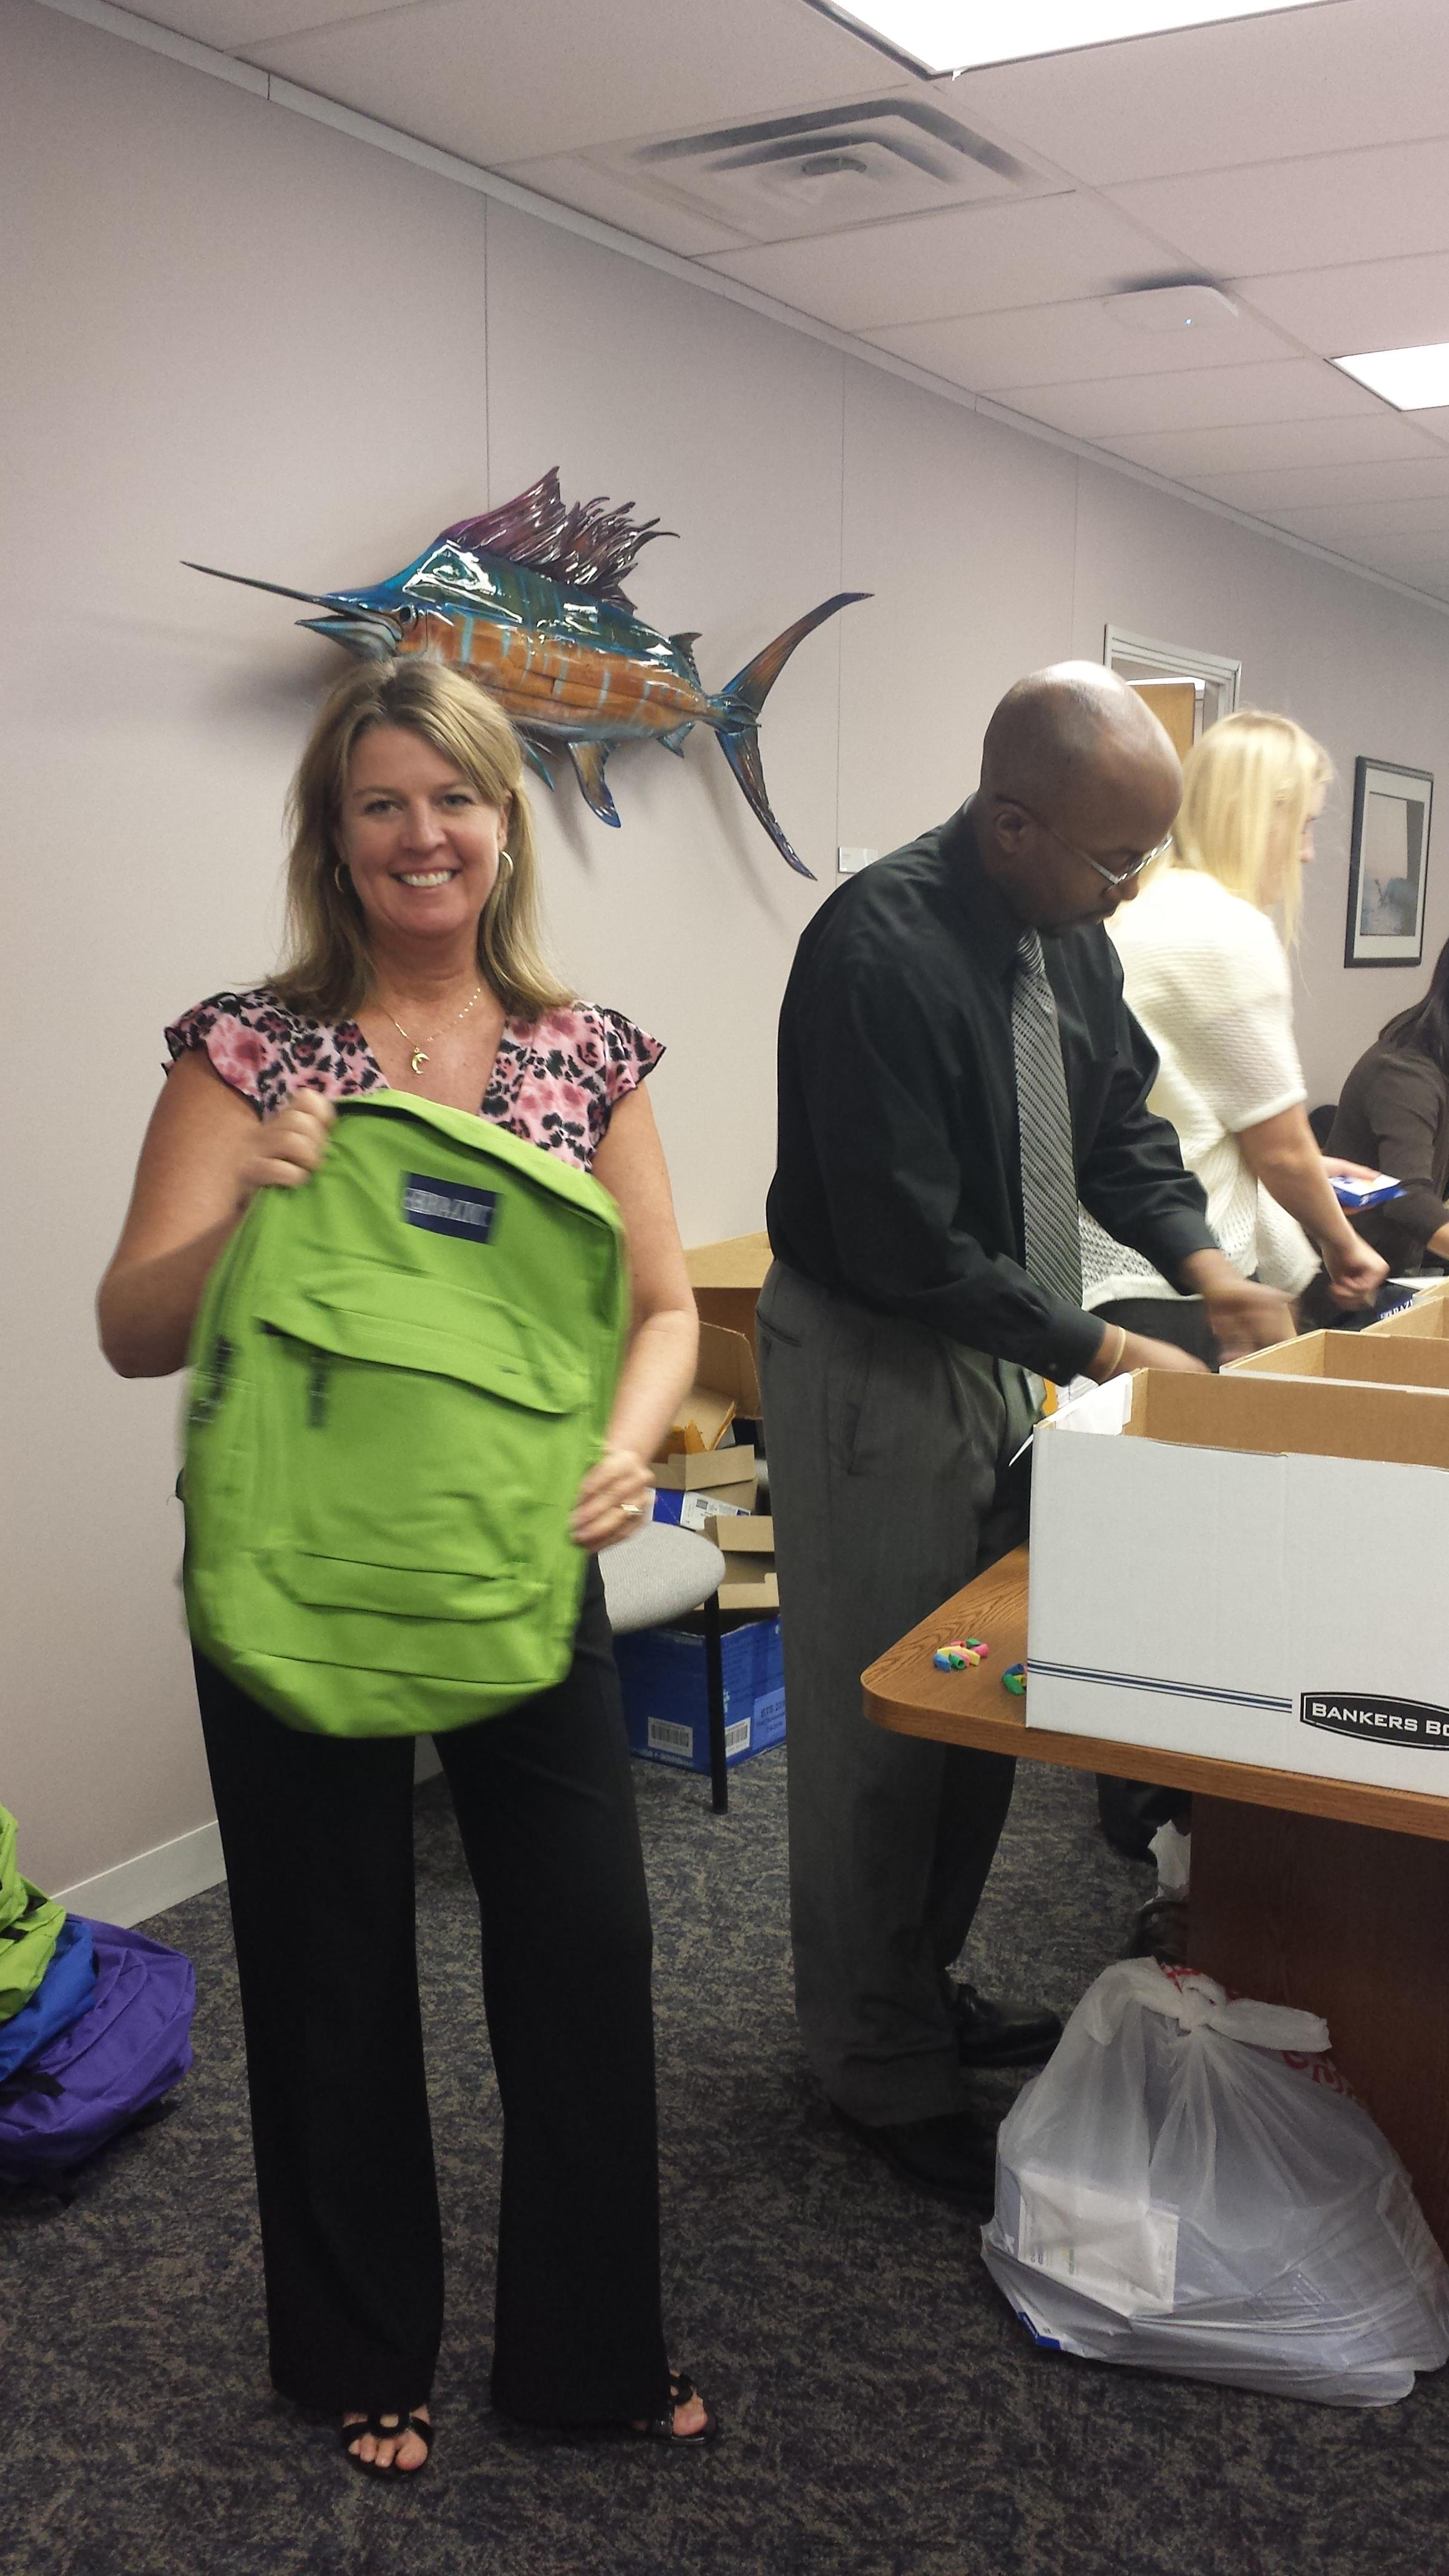 Josee volunteers to fill back packs for children in need